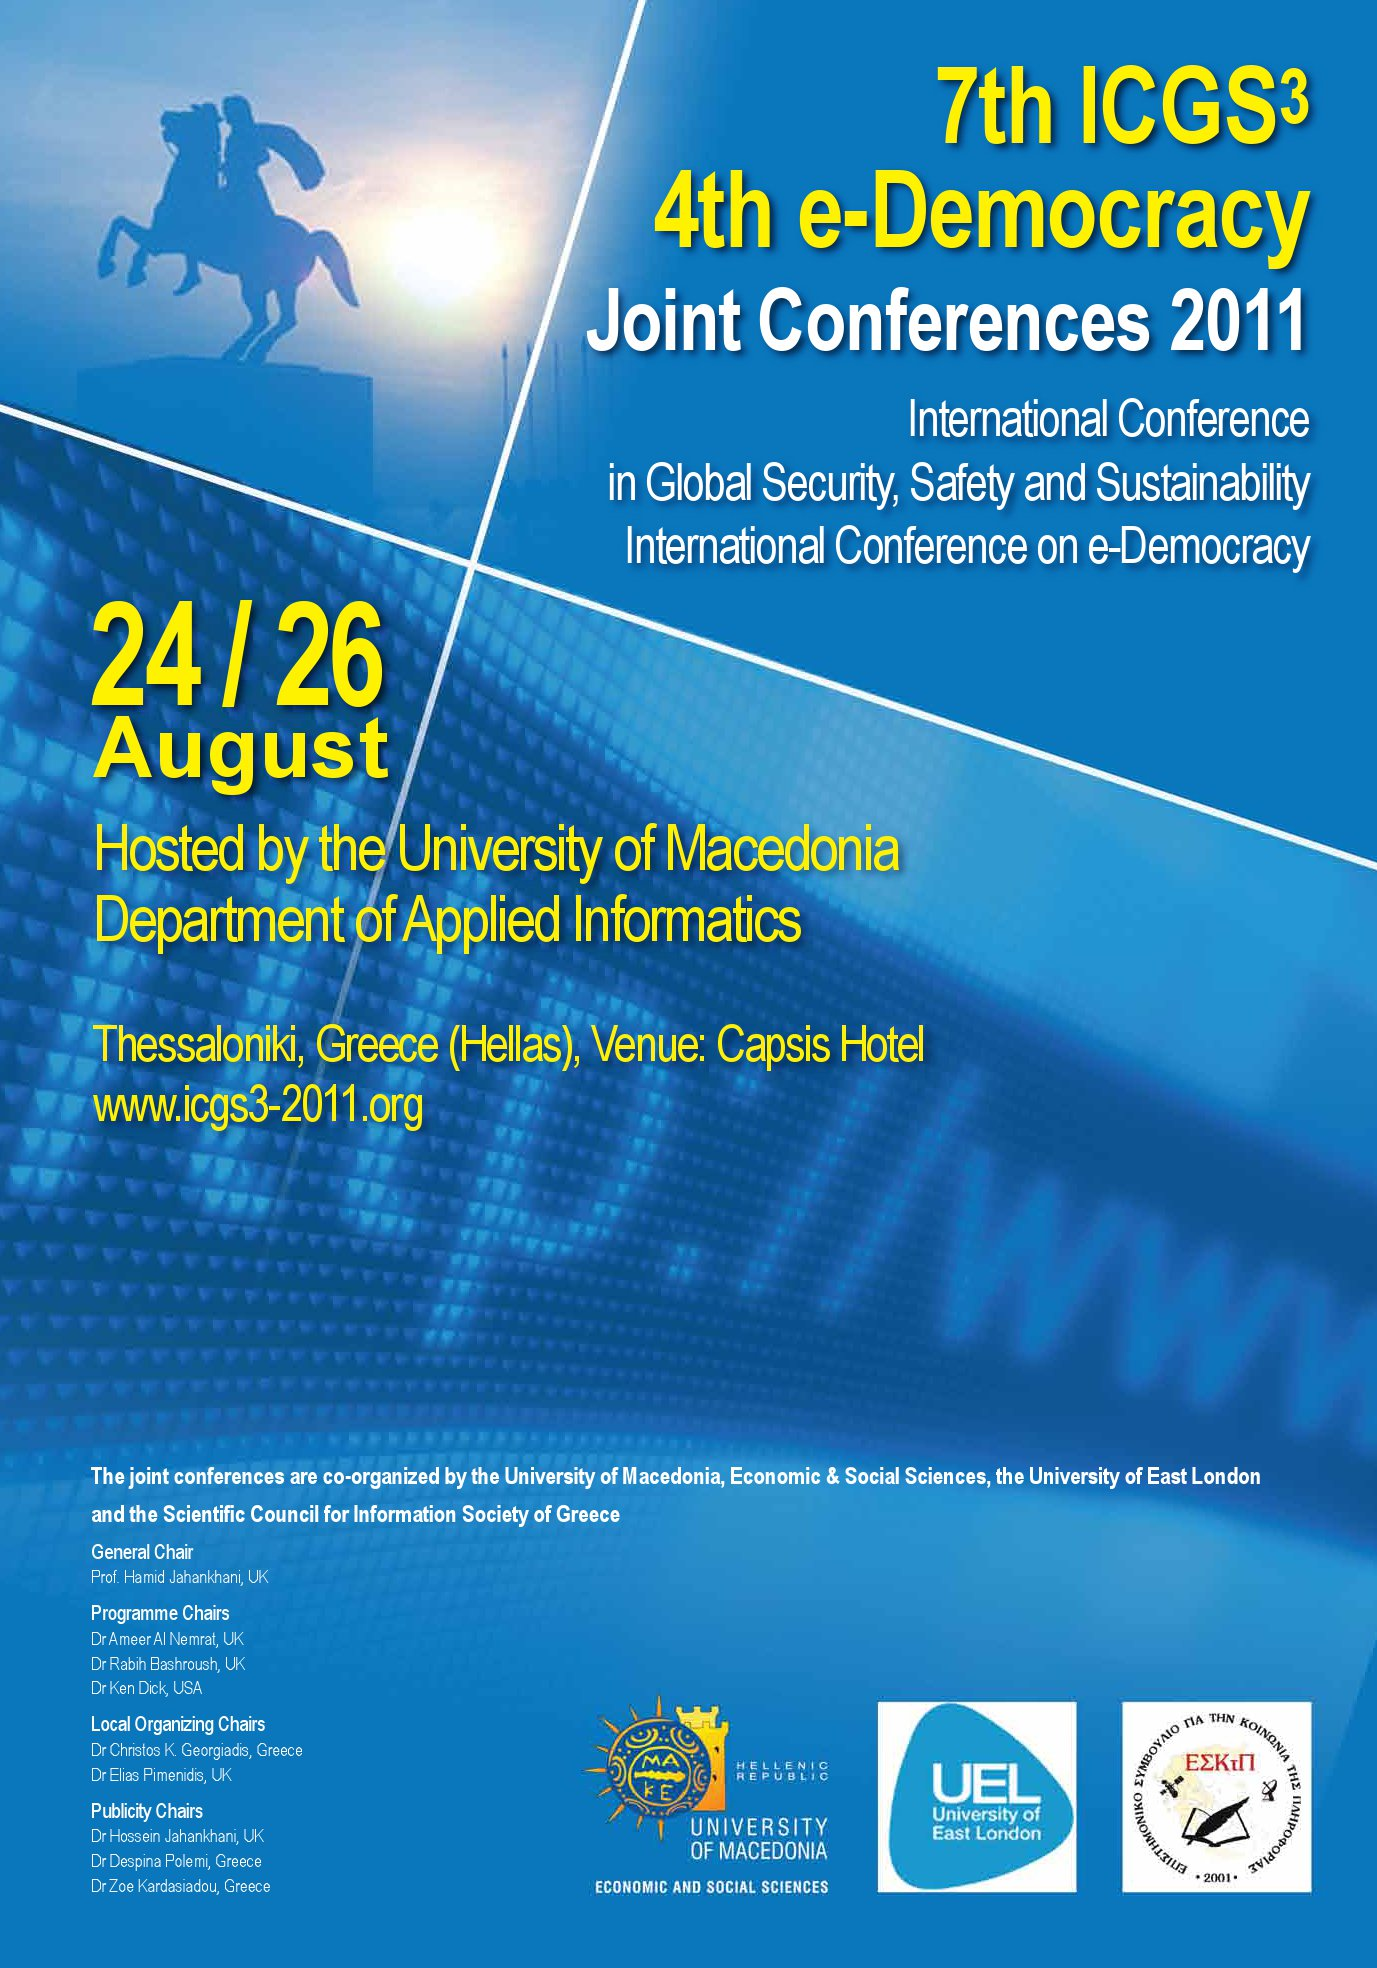 7th ICGS3  4th eDemocracy Joint Conferences